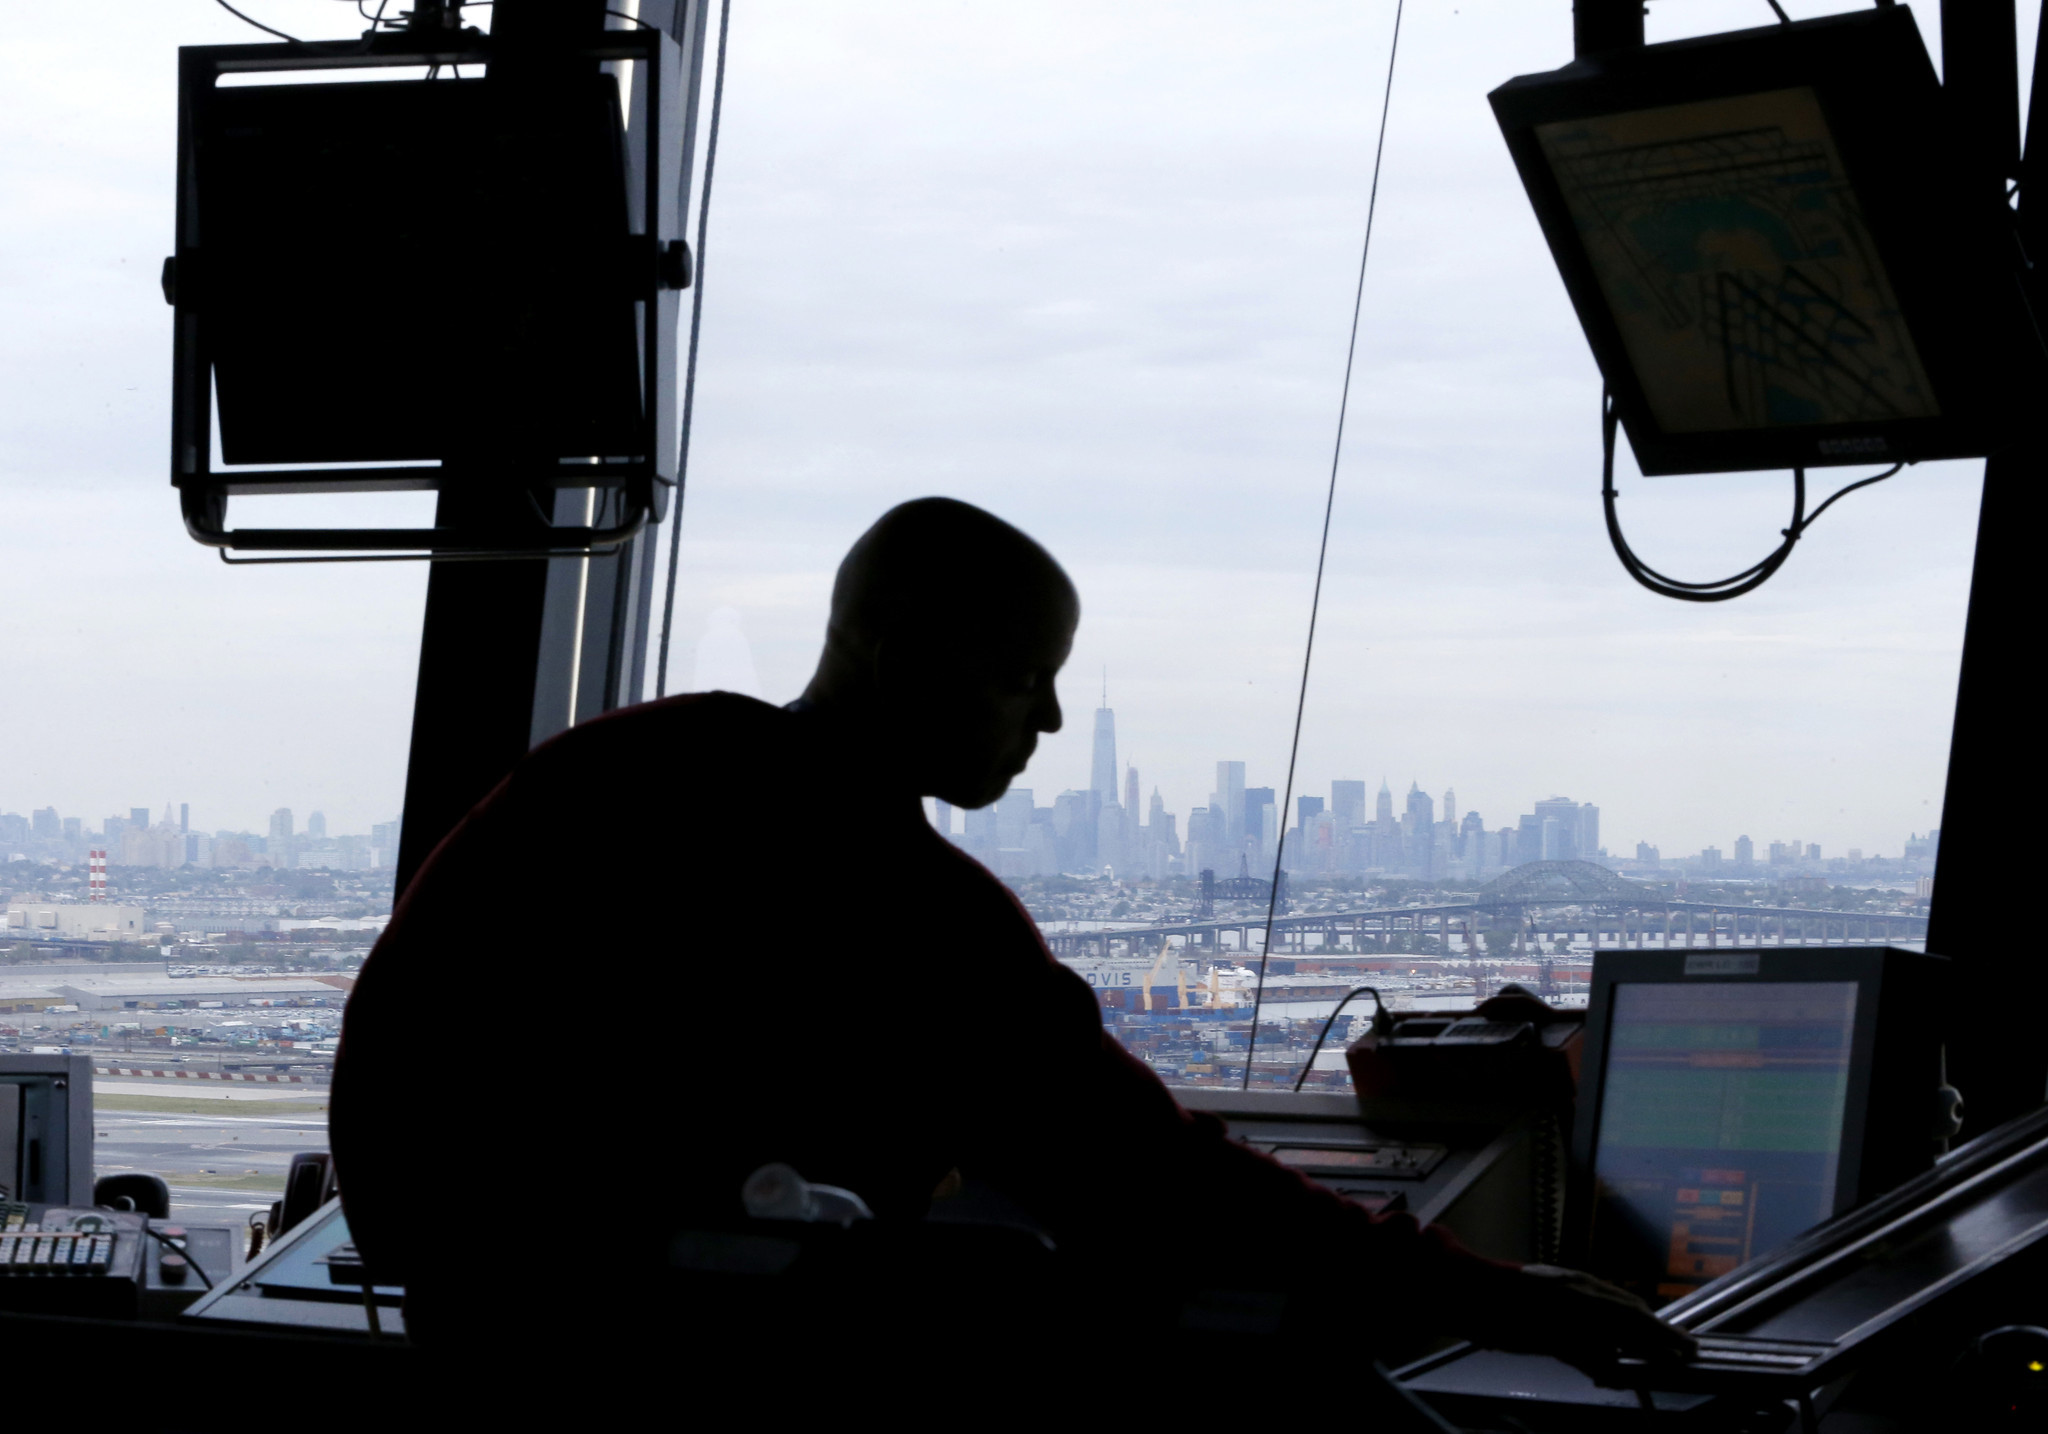 Air traffic controller study nzx